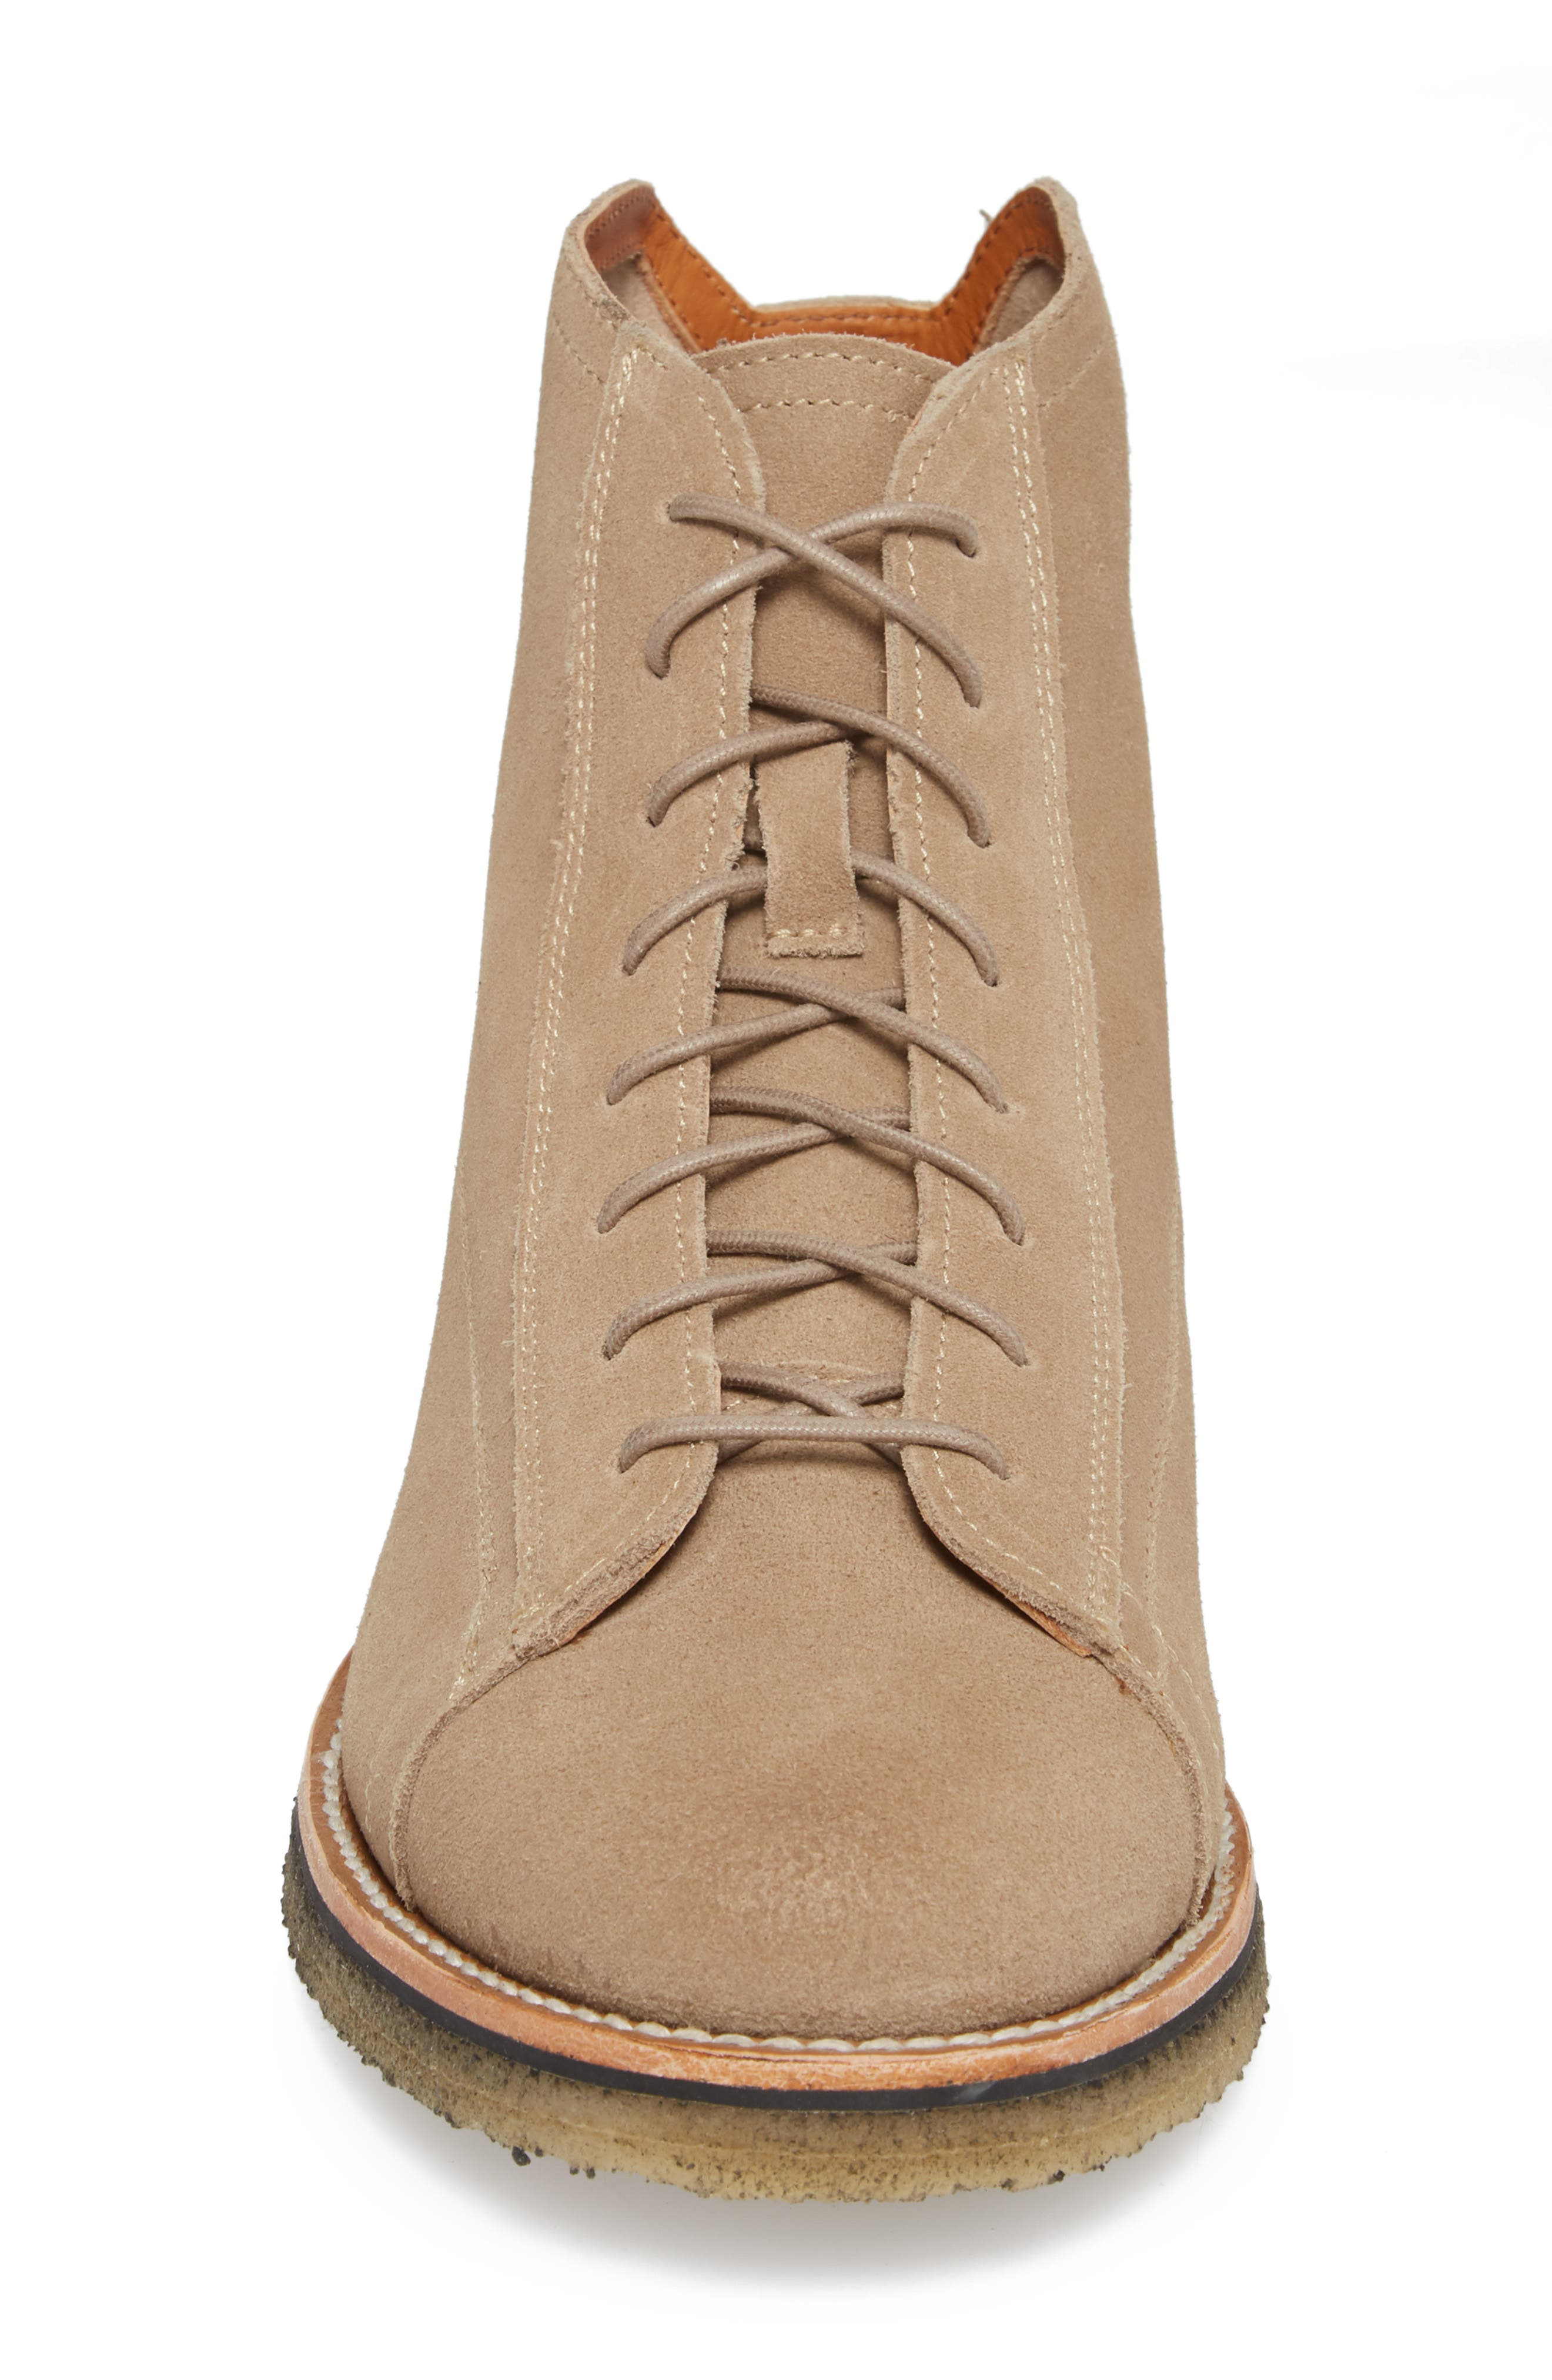 Two24 by Ariat Webster Boot,                             Alternate thumbnail 4, color,                             Biscotti Suede